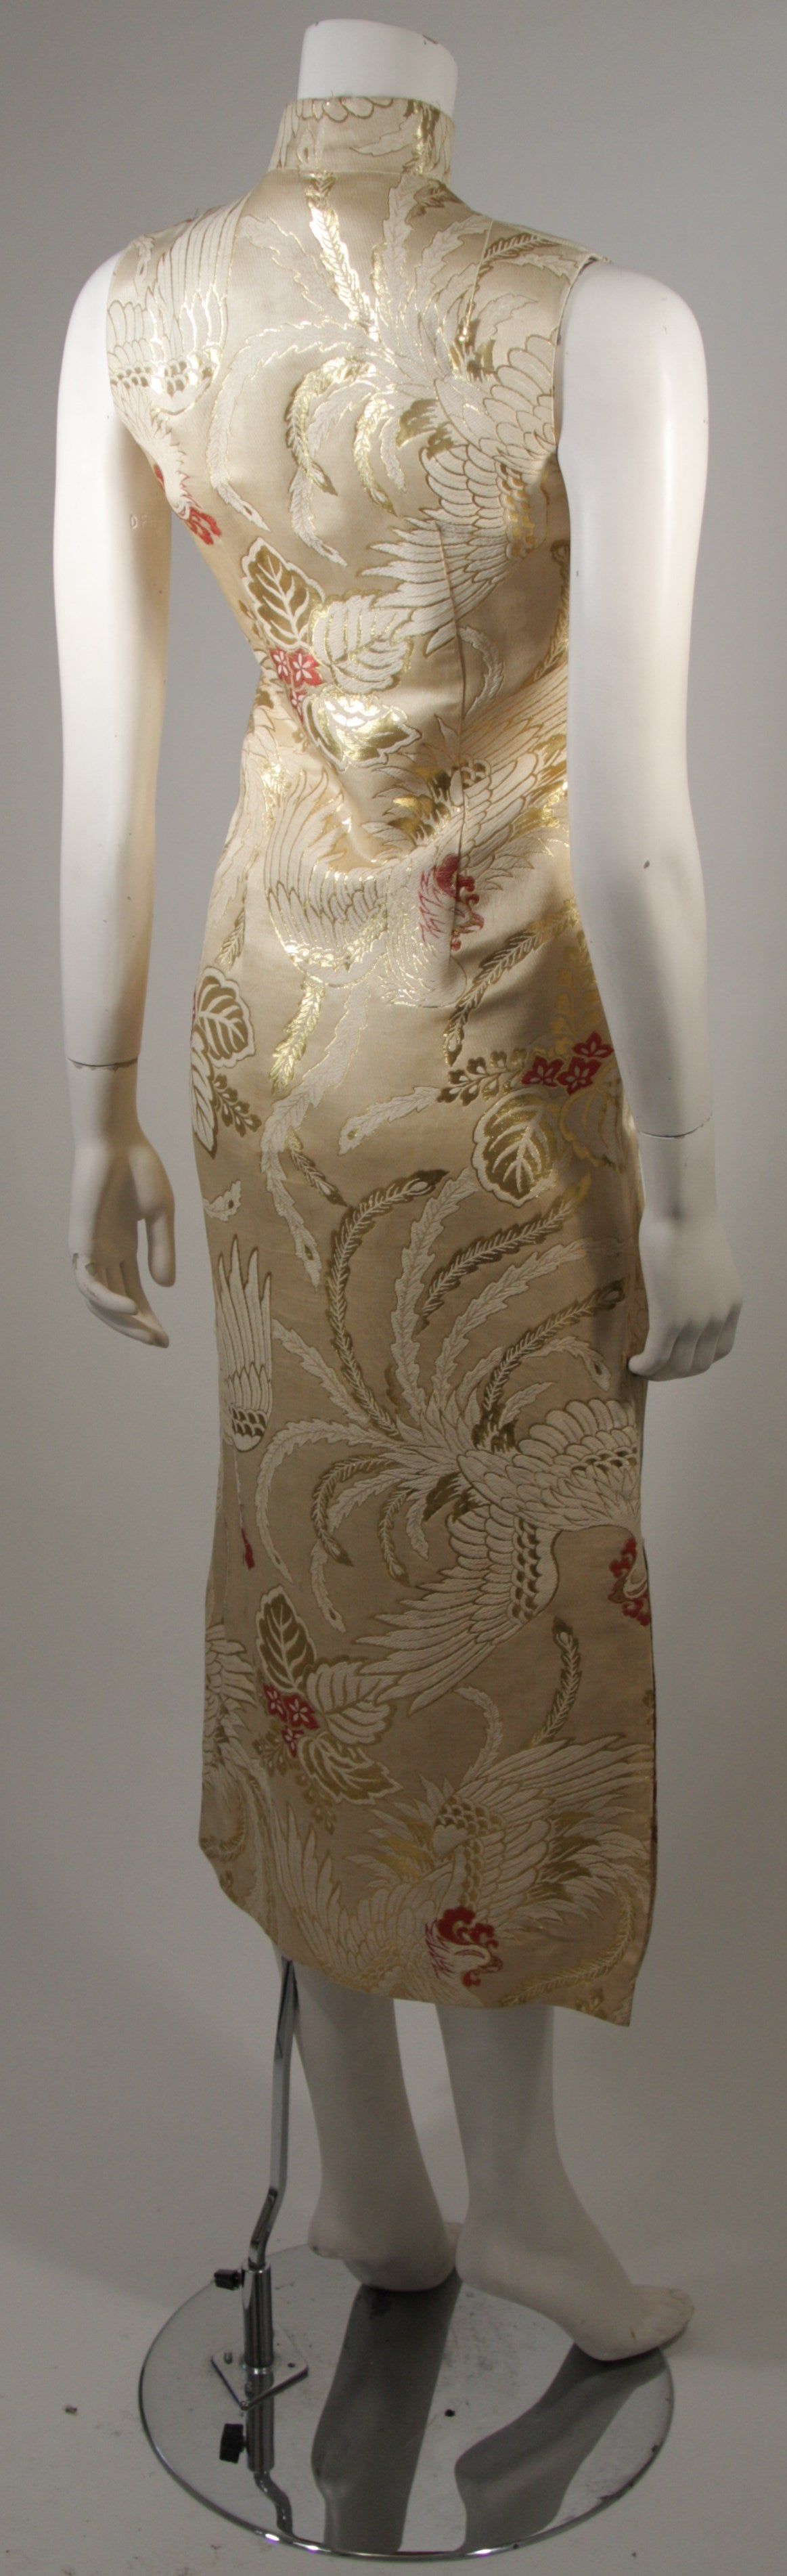 1950's Ivory and Gold Brocade Phoenix w. Red Flowers Cocktail Dress XS For Sale 1